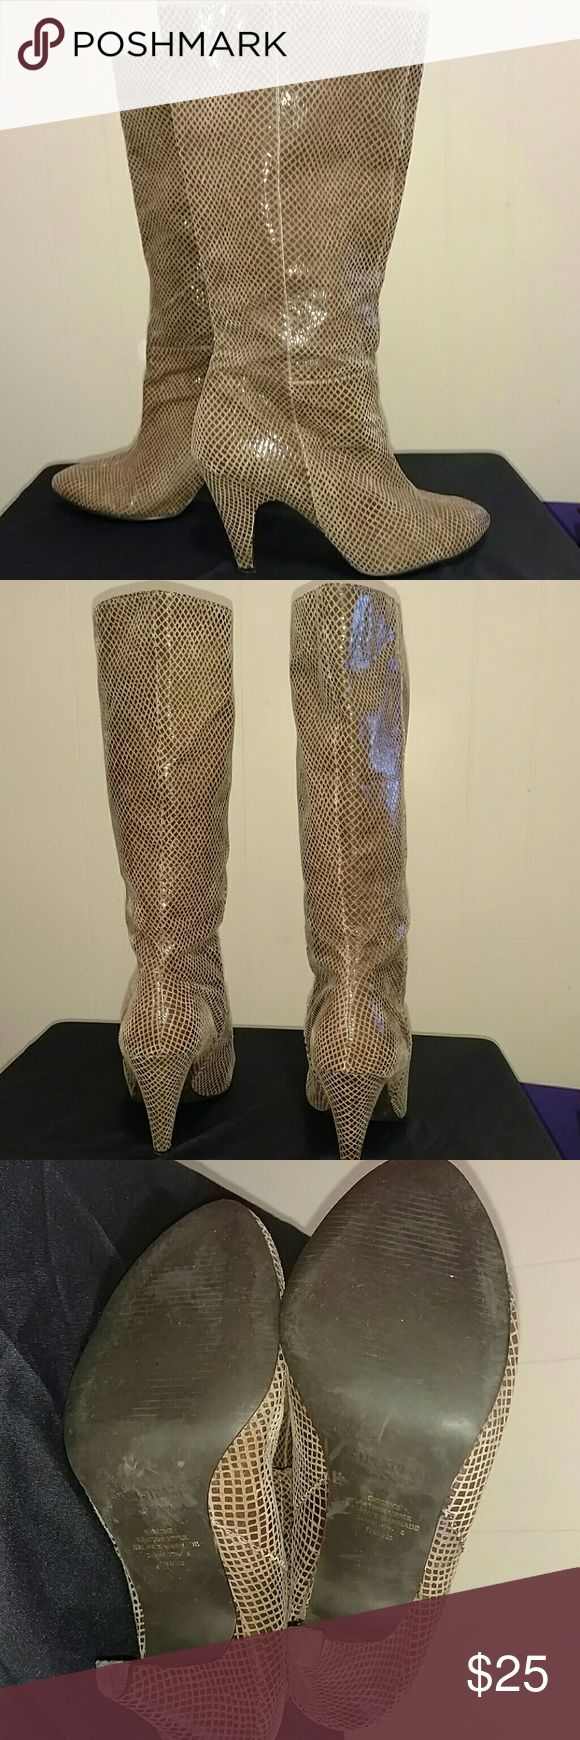 Genuine Leather Snakeskin print boots Genuine Leather Snakeskin print boots I'm excellent used condition. Beautiful boots with lots of life left. No box. Colin Stuart Shoes Ankle Boots & Booties